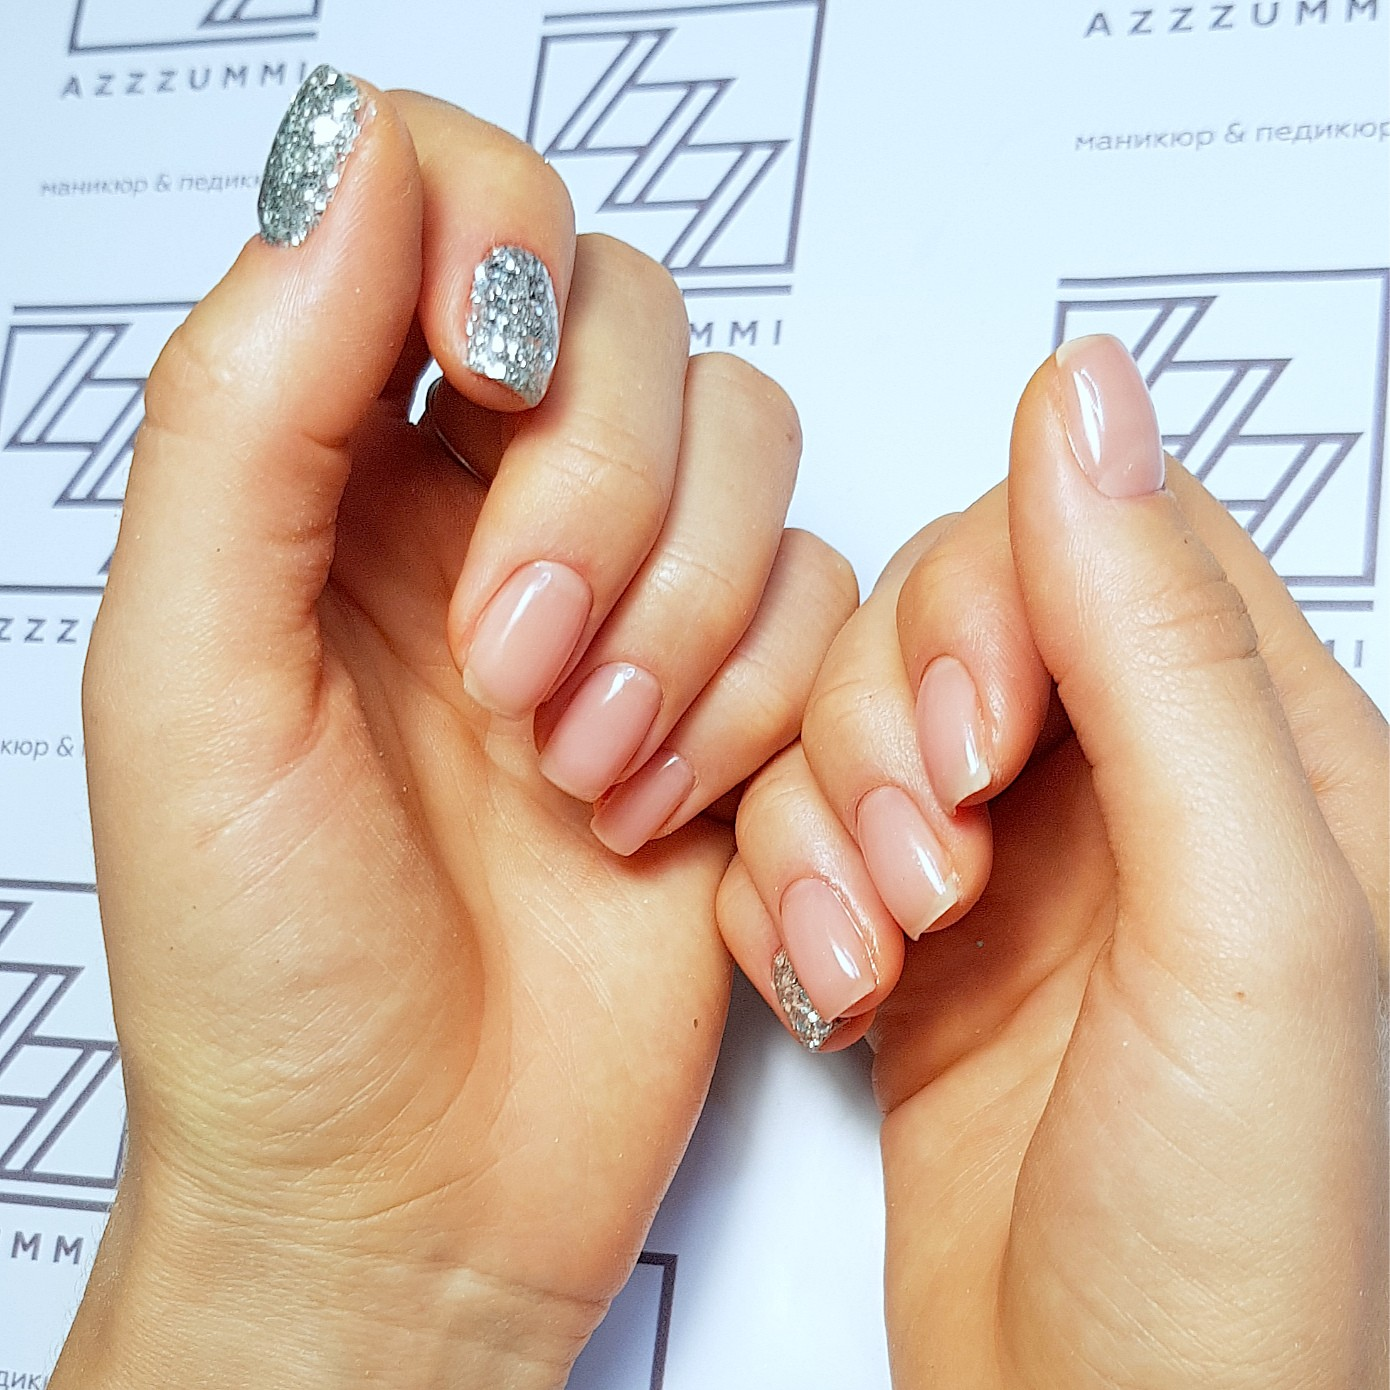 Azzzummi_nails_ 1905_artex